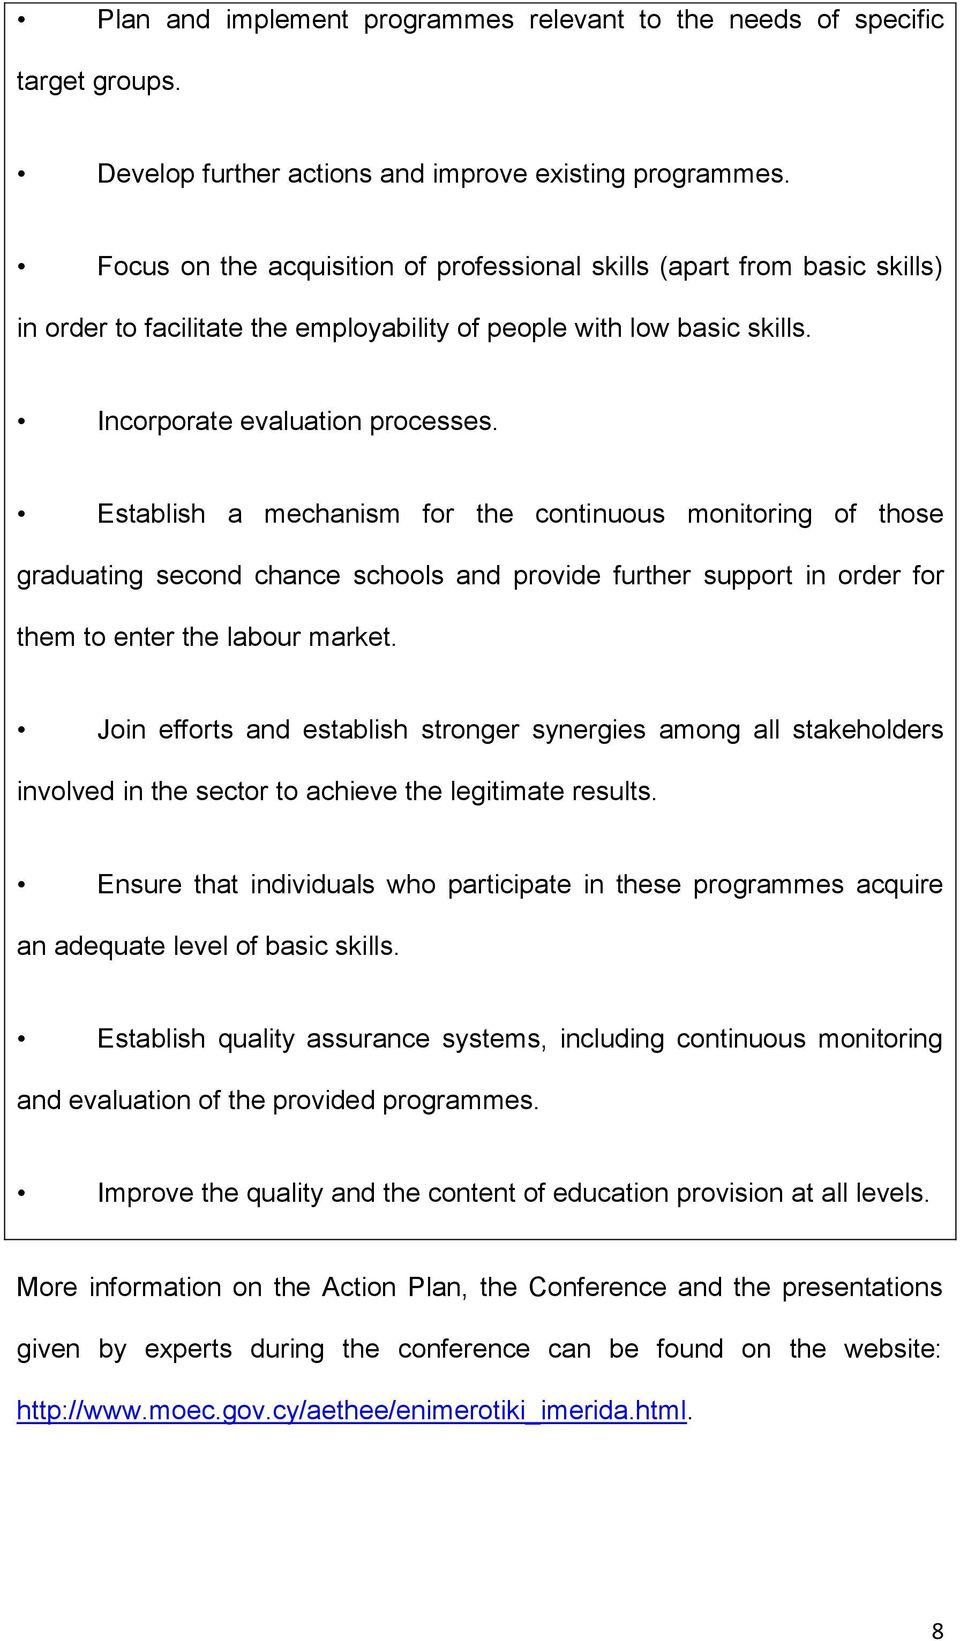 Establish a mechanism for the continuous monitoring of those graduating second chance schools and provide further support in order for them to enter the labour market.